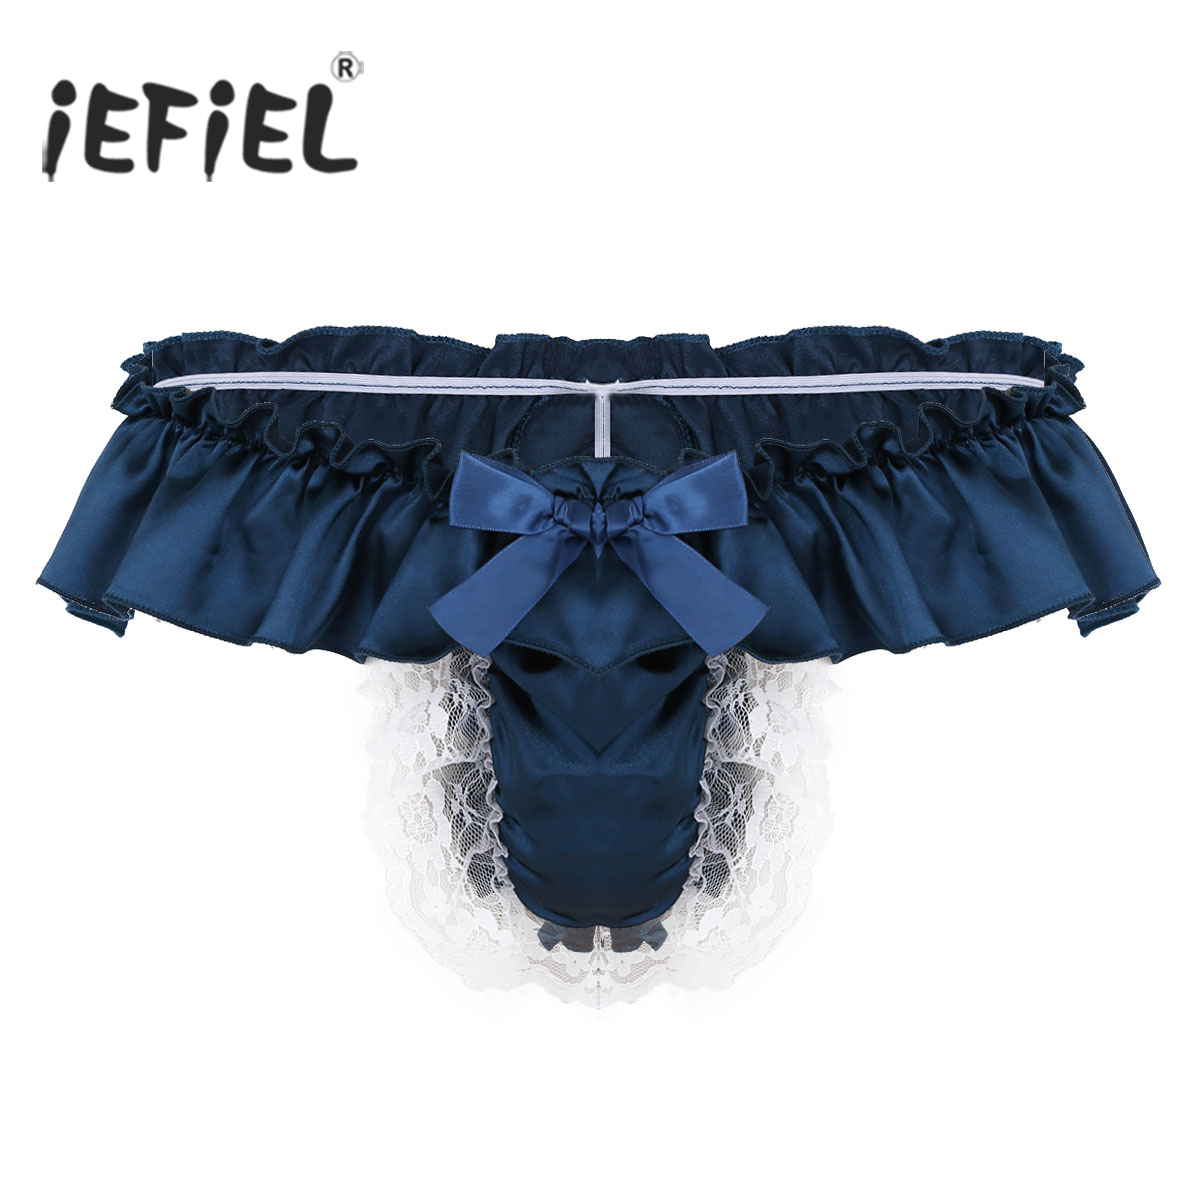 90f015916037 iEFiEL Mens Soft Shiny Satin Frilly Sissy Skirted Novetly G-String Thong  Brief Underwear Panties Exotic Apparel